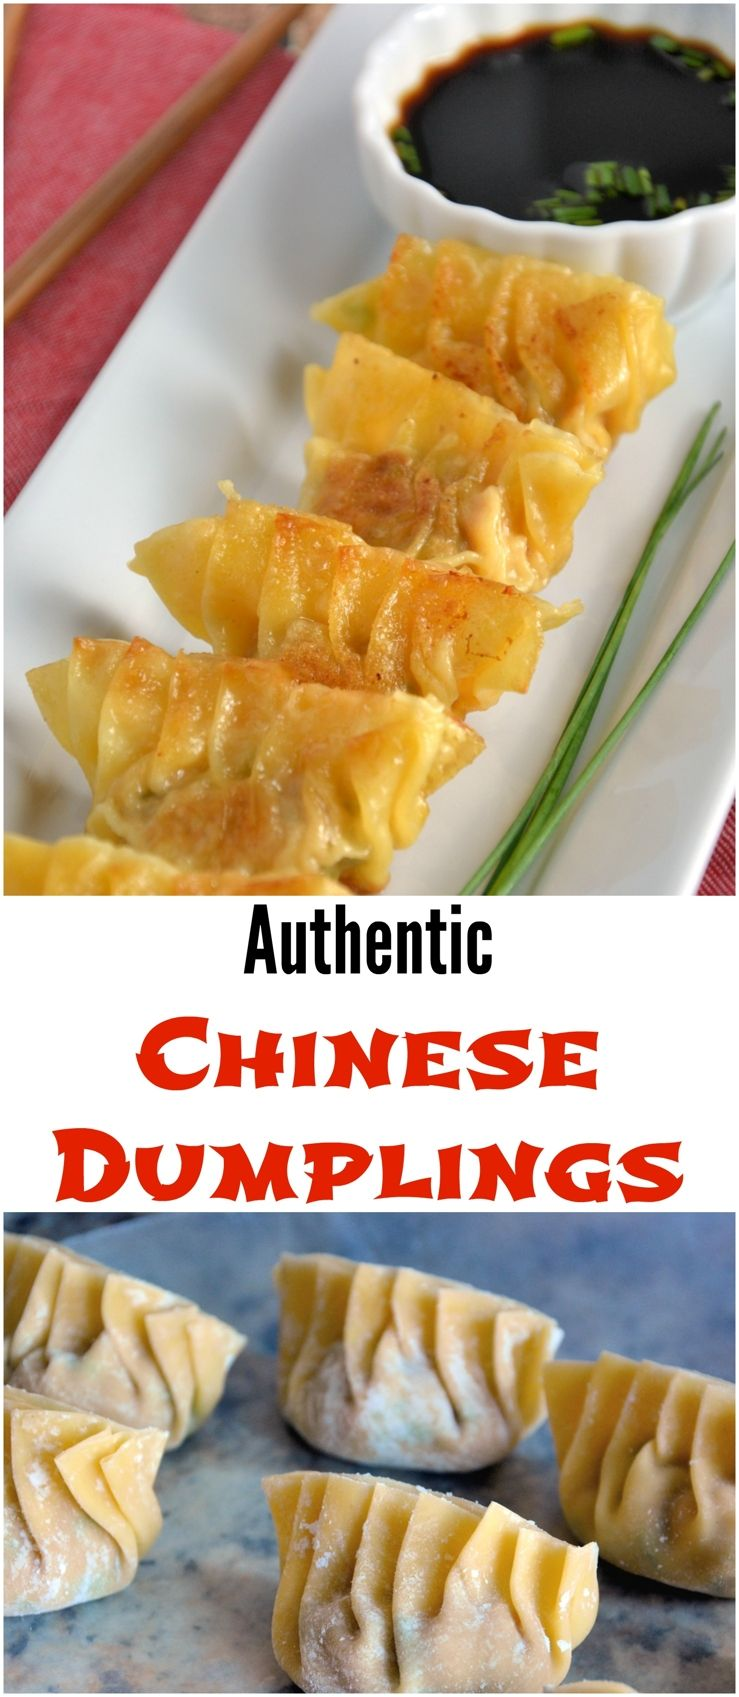 Authentic homemade dumplings potstickers recipe learn how to make authentic homemade dumplings potstickers recipe learn how to make pork and shrimp dumplings forumfinder Image collections